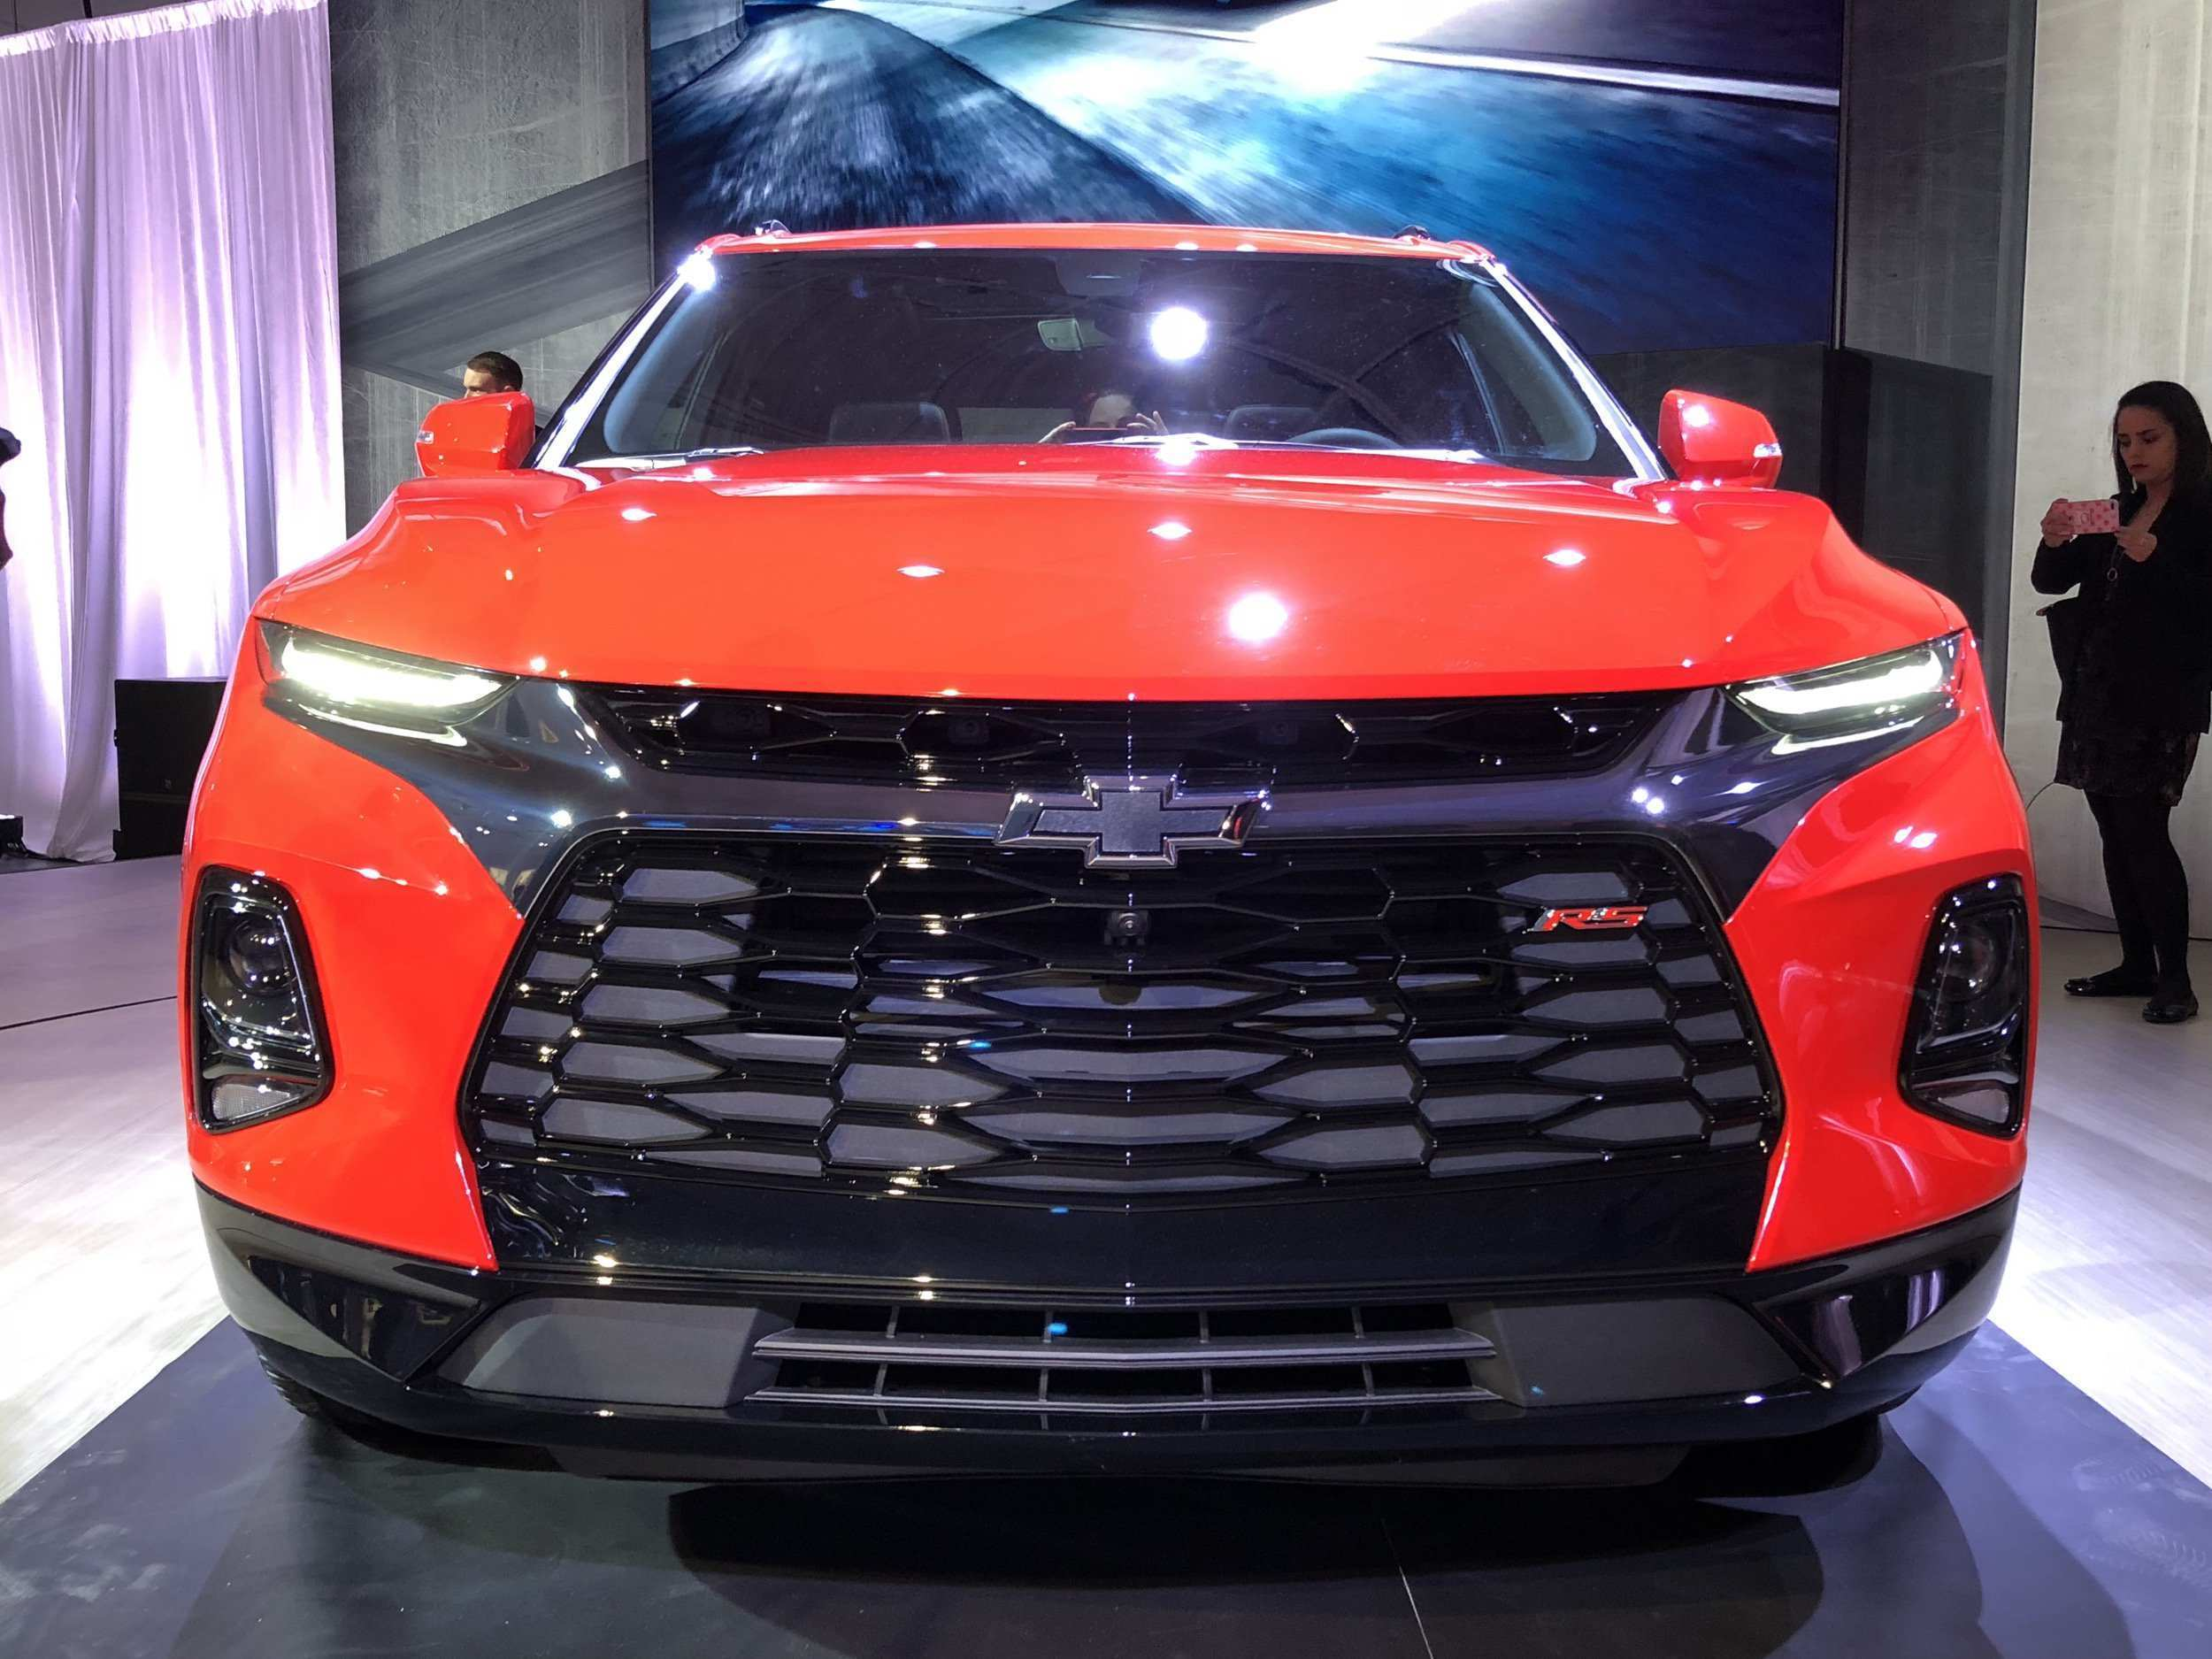 17 Gallery of New New Chevrolet 2019 Blazer Engine Overview for New New Chevrolet 2019 Blazer Engine